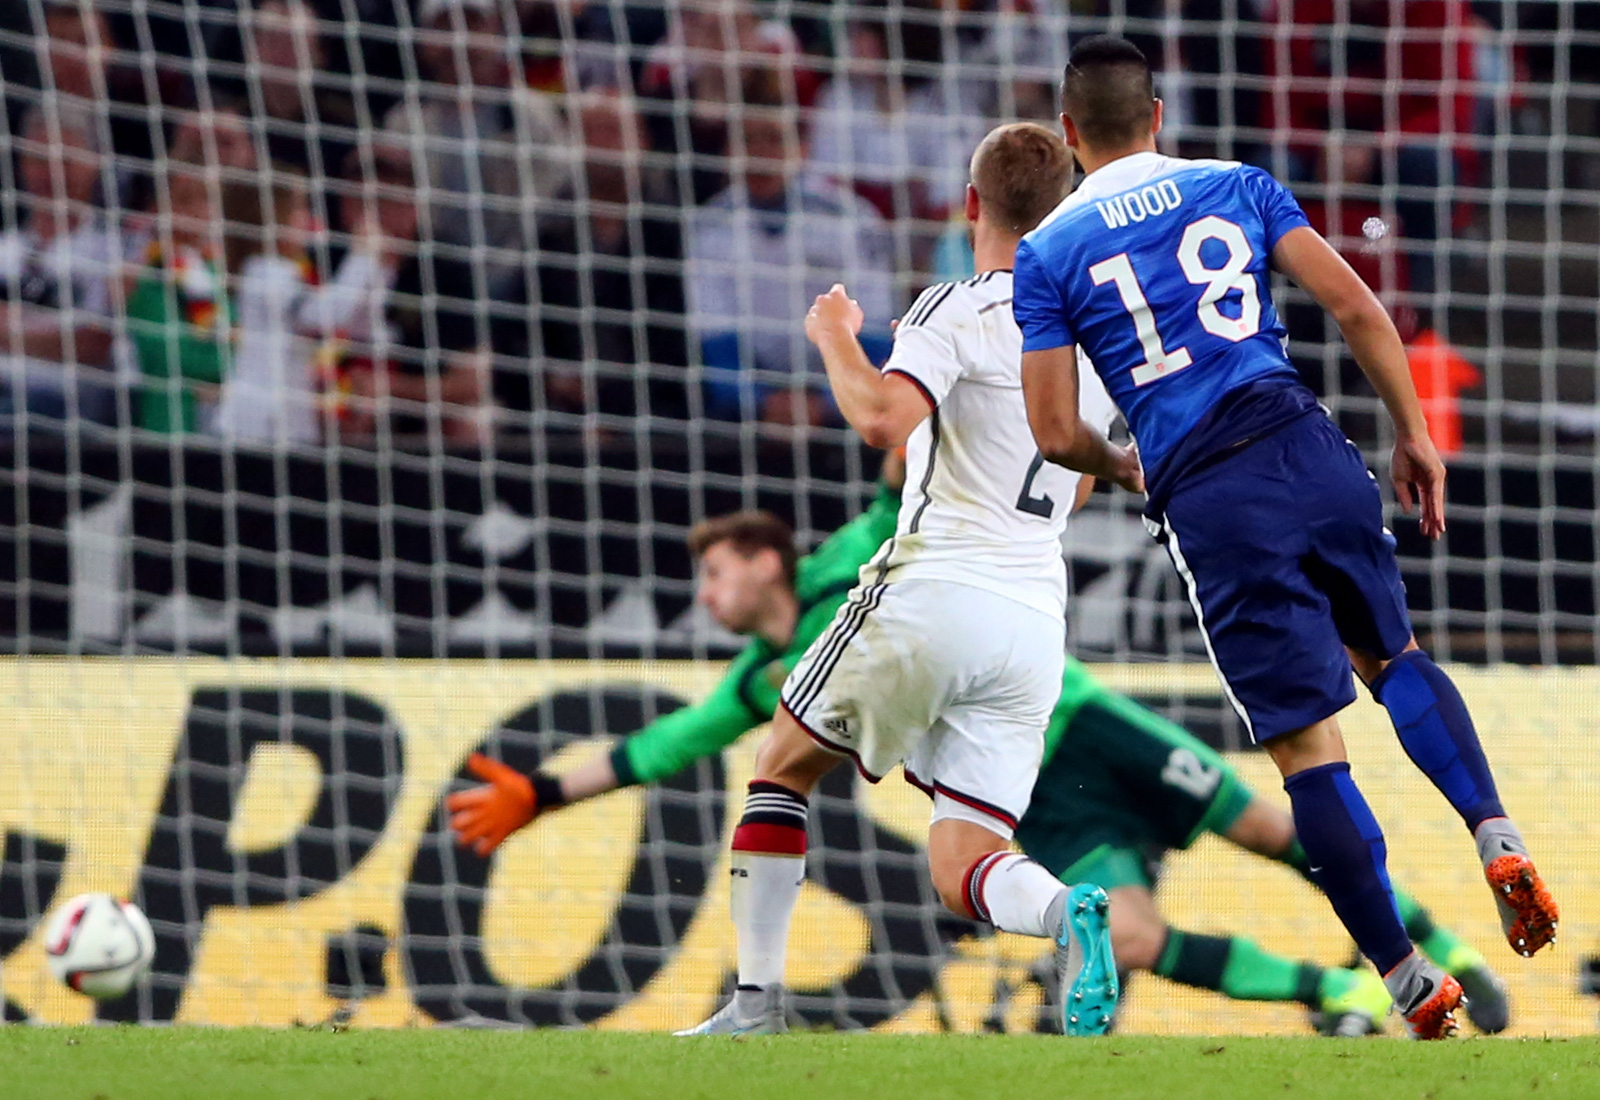 For the second straight game, Bobby Wood came off the bench and scored a stunning winner. He watches his long-range blast beat Ron-Robert Zieler in a 2-1 win over world No. 1 Germany.